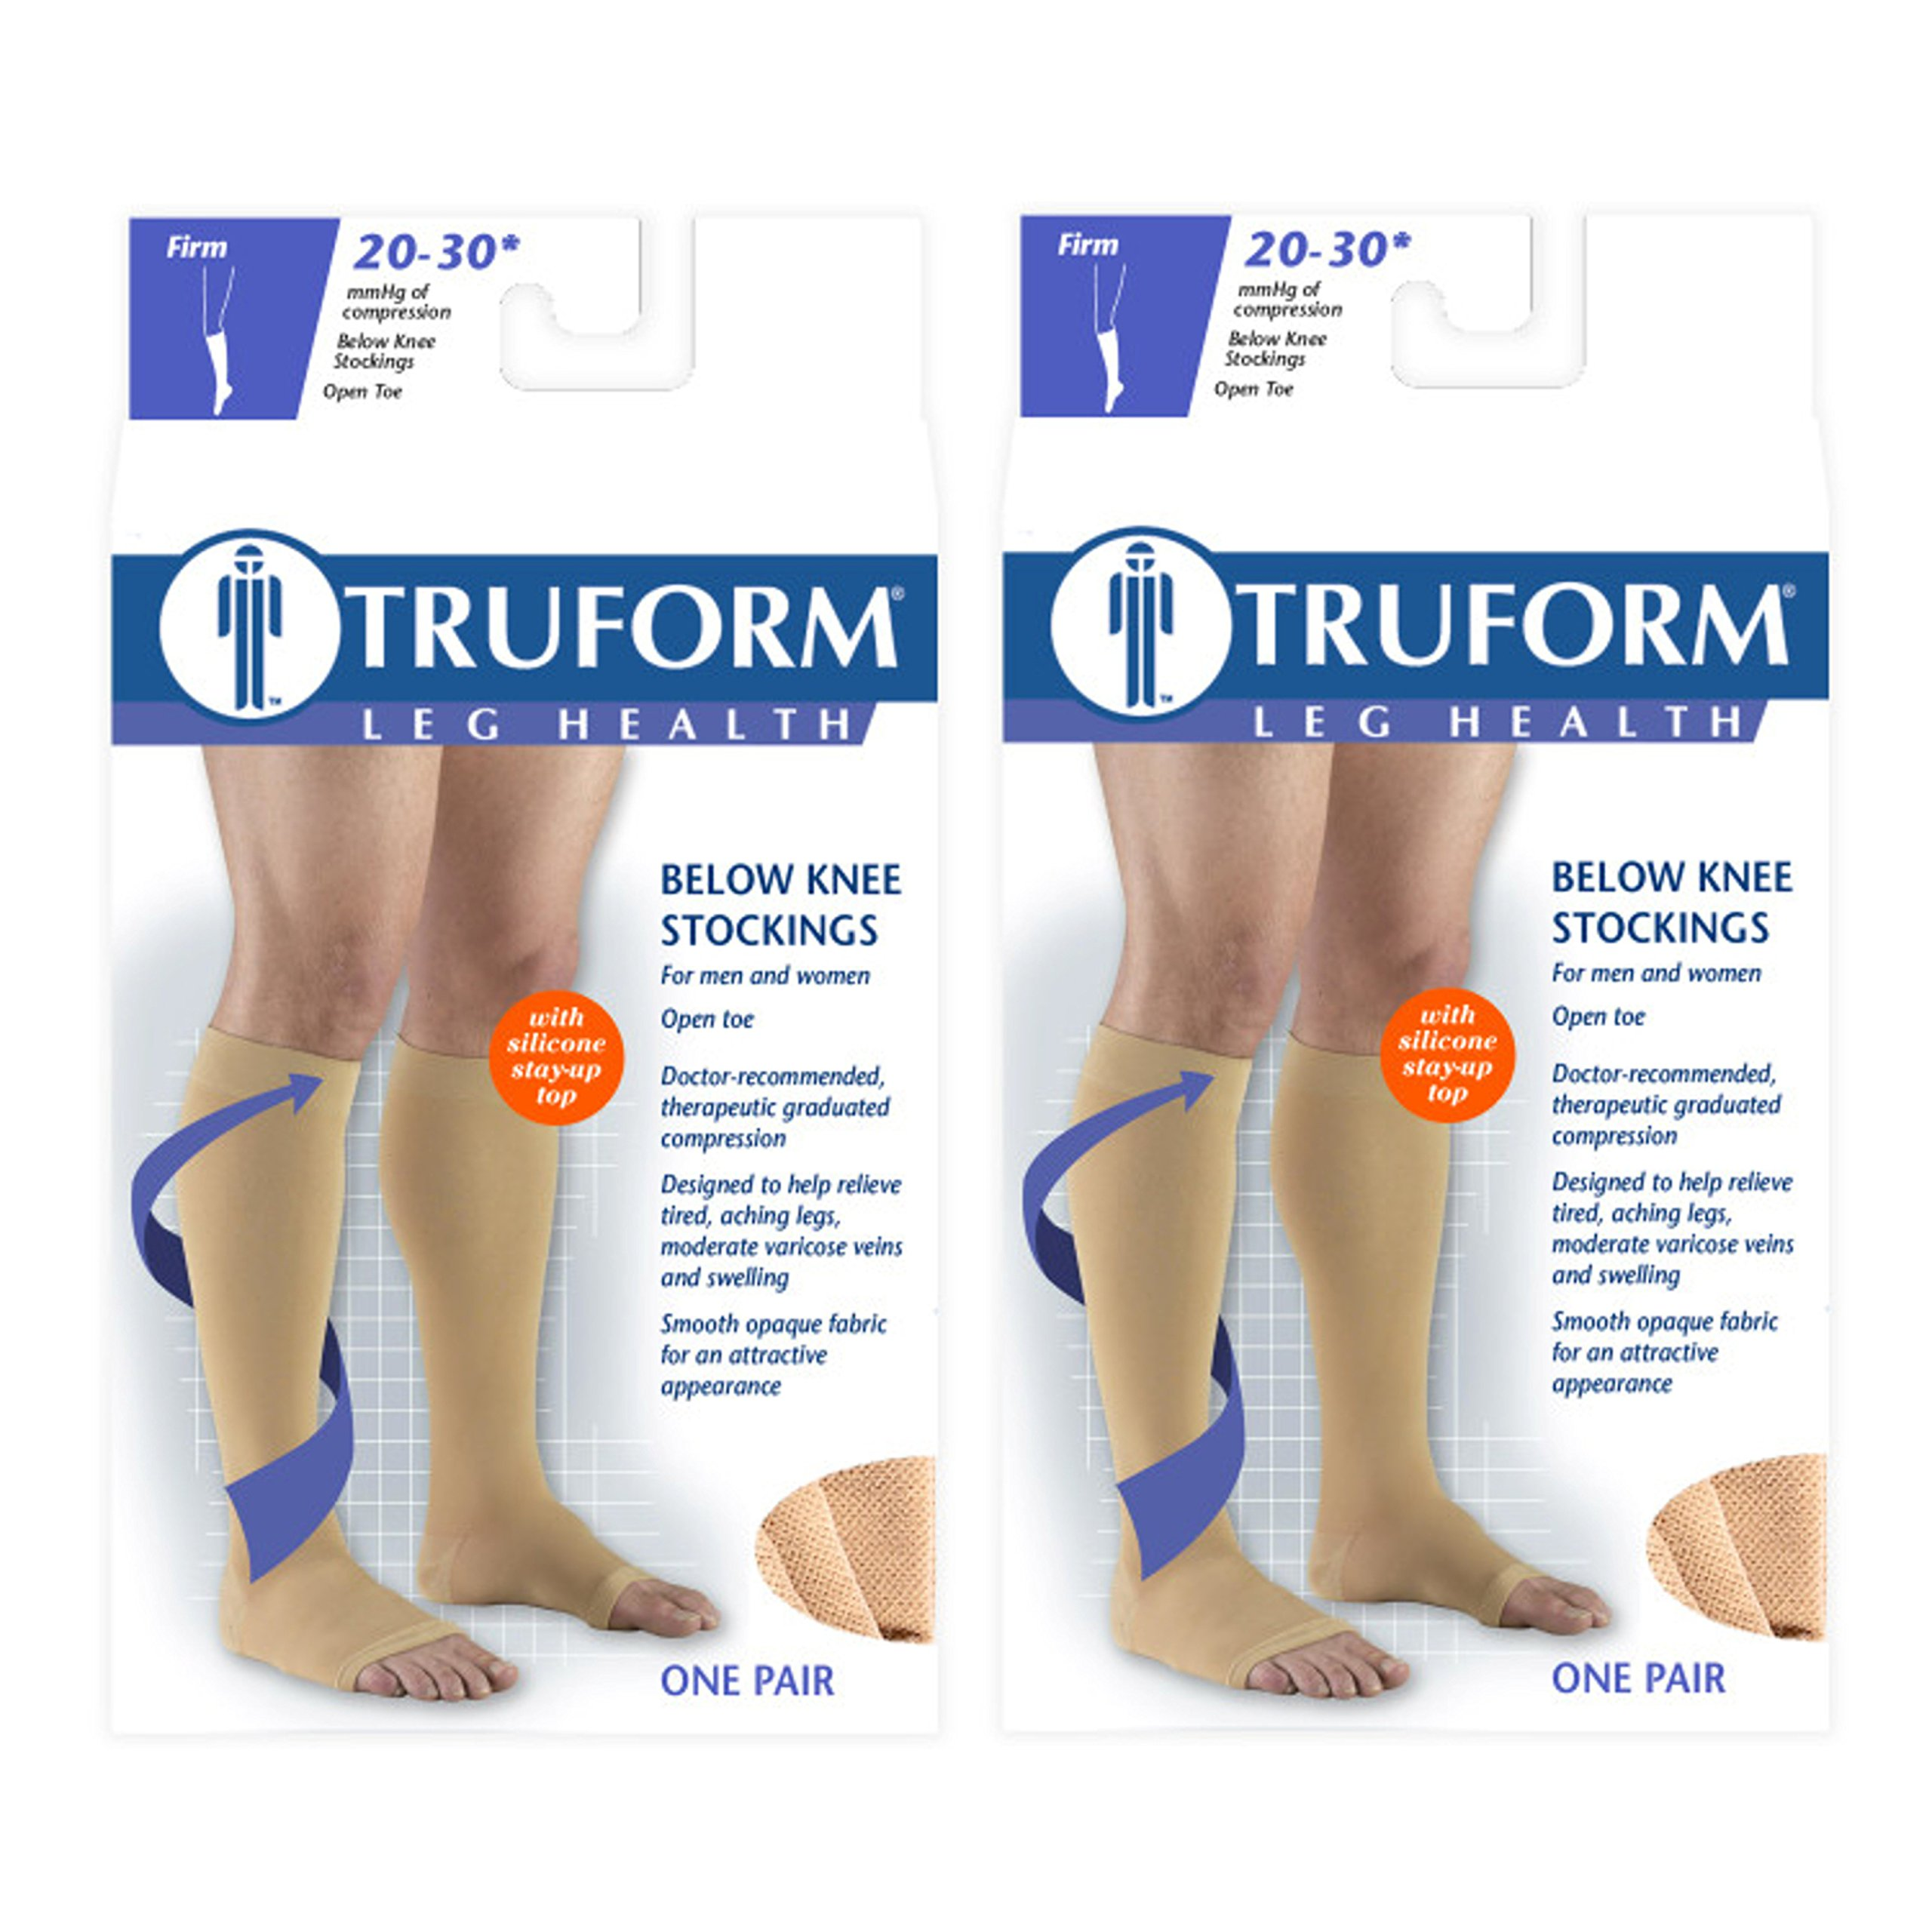 Truform Compression 20-30 mmHg Knee High Open Toe Dot Top Stockings Beige, 3X-Large, 2 Count by Truform (Image #1)